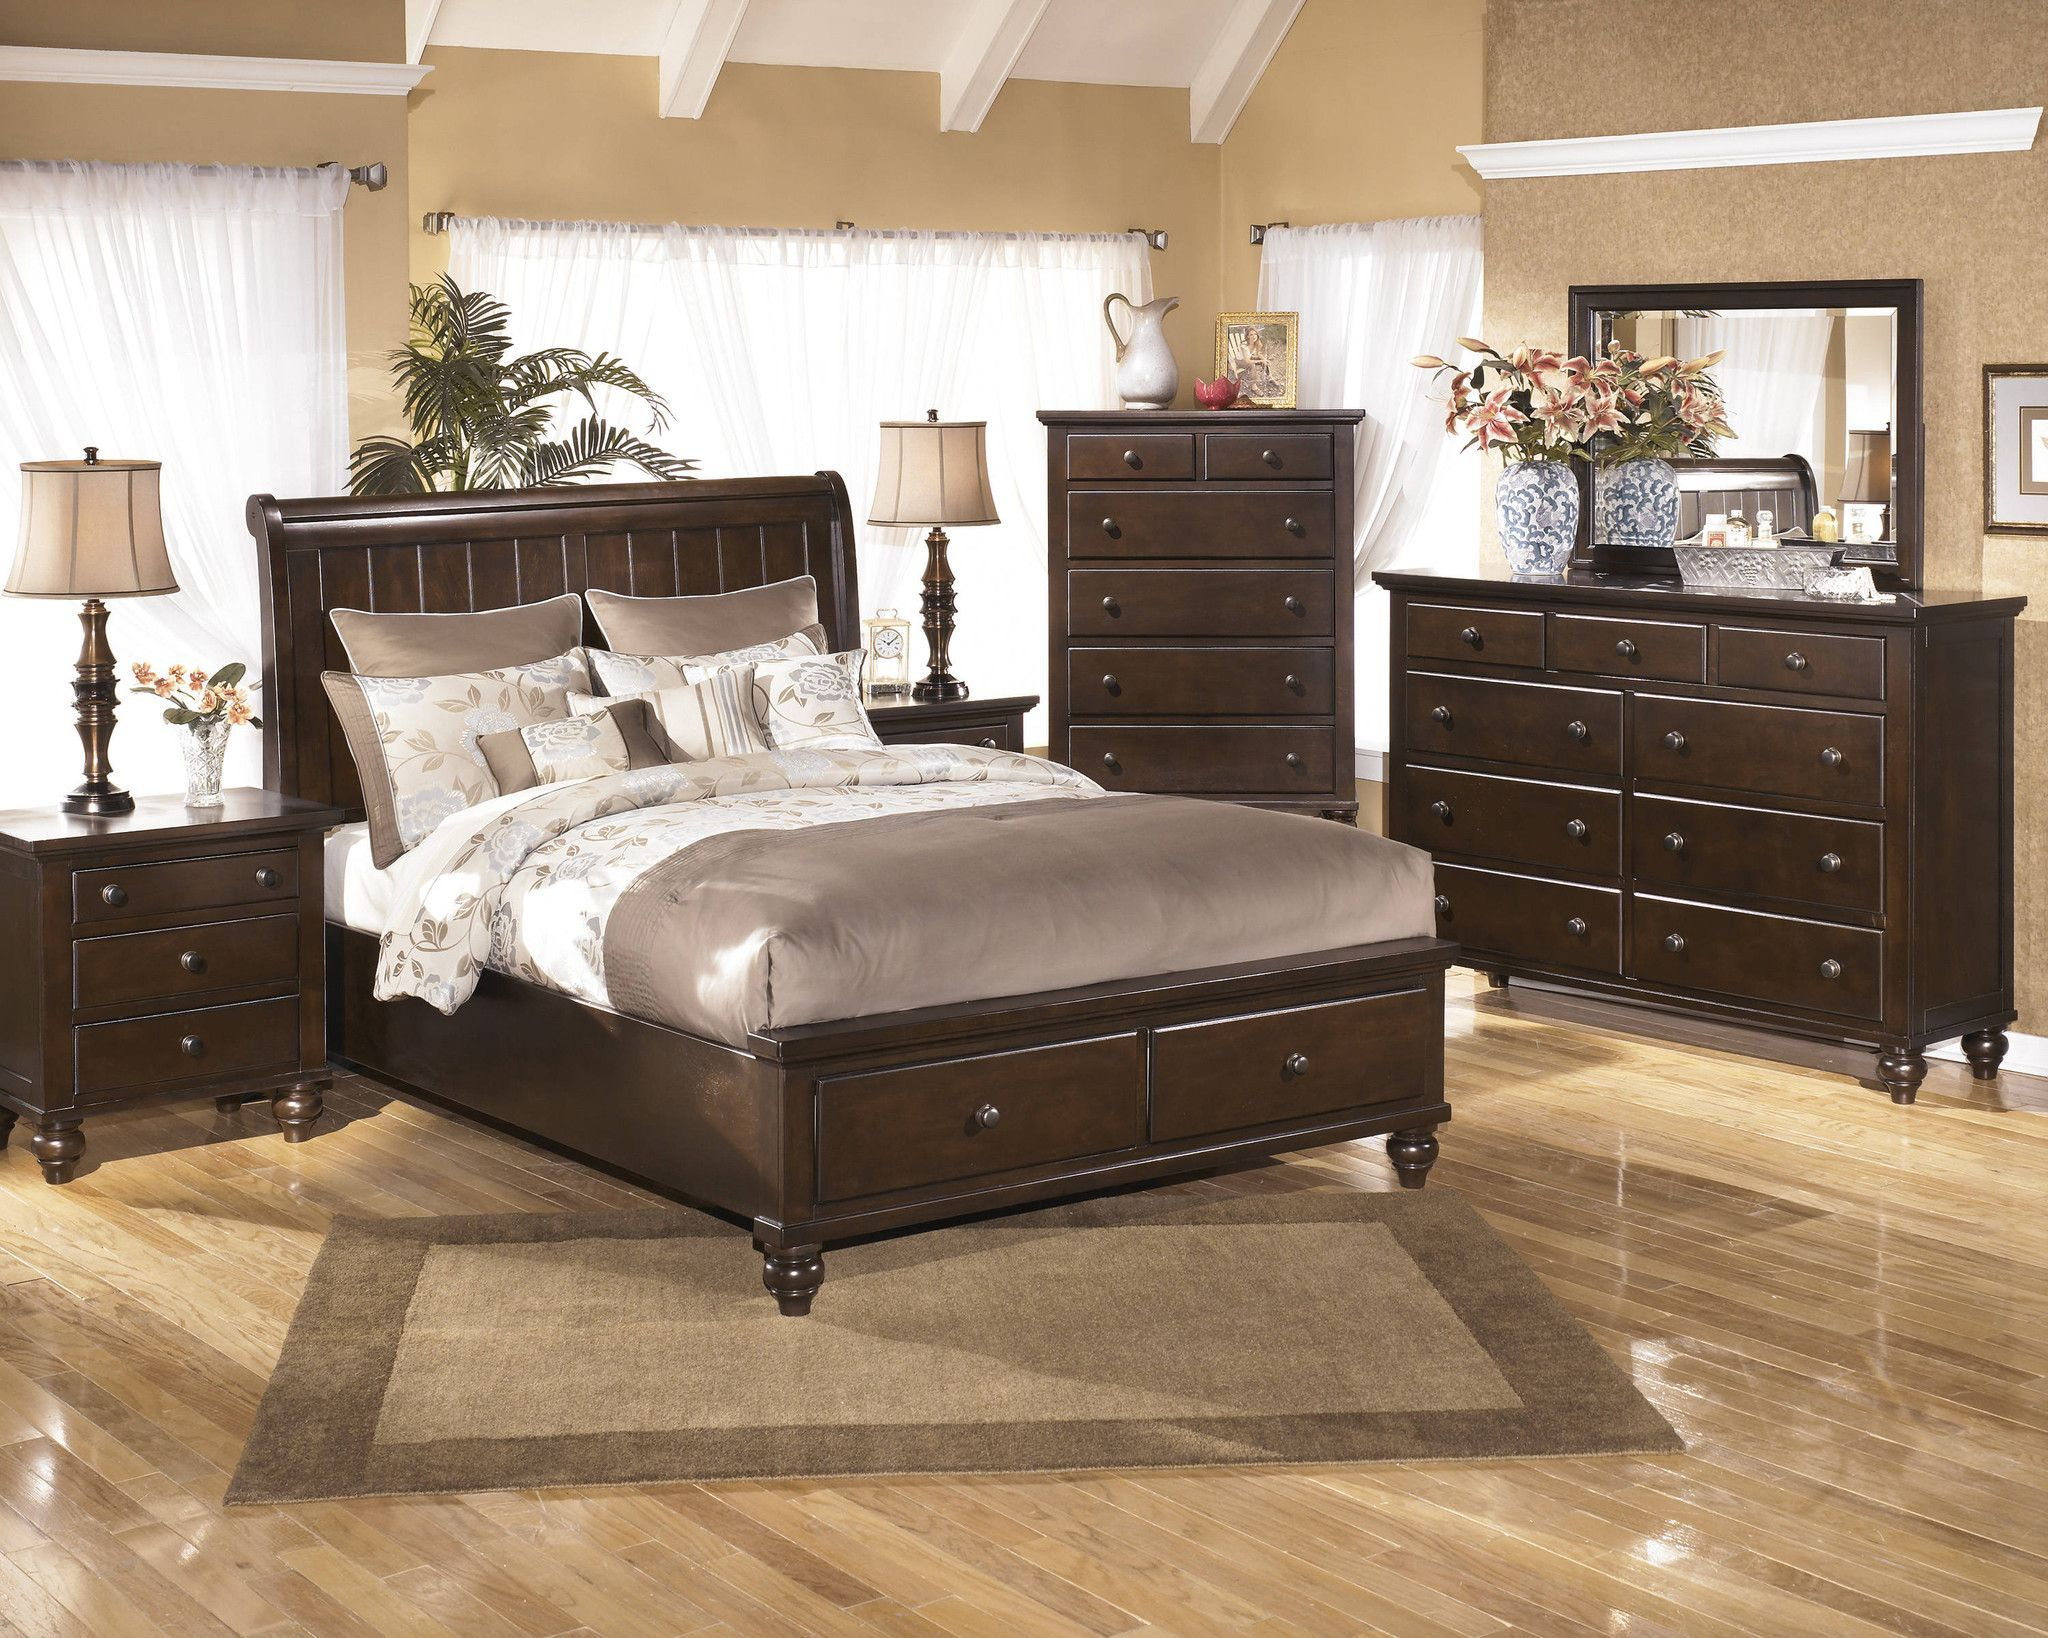 Picture of: Ashley Furniture Bed With Storage at Target